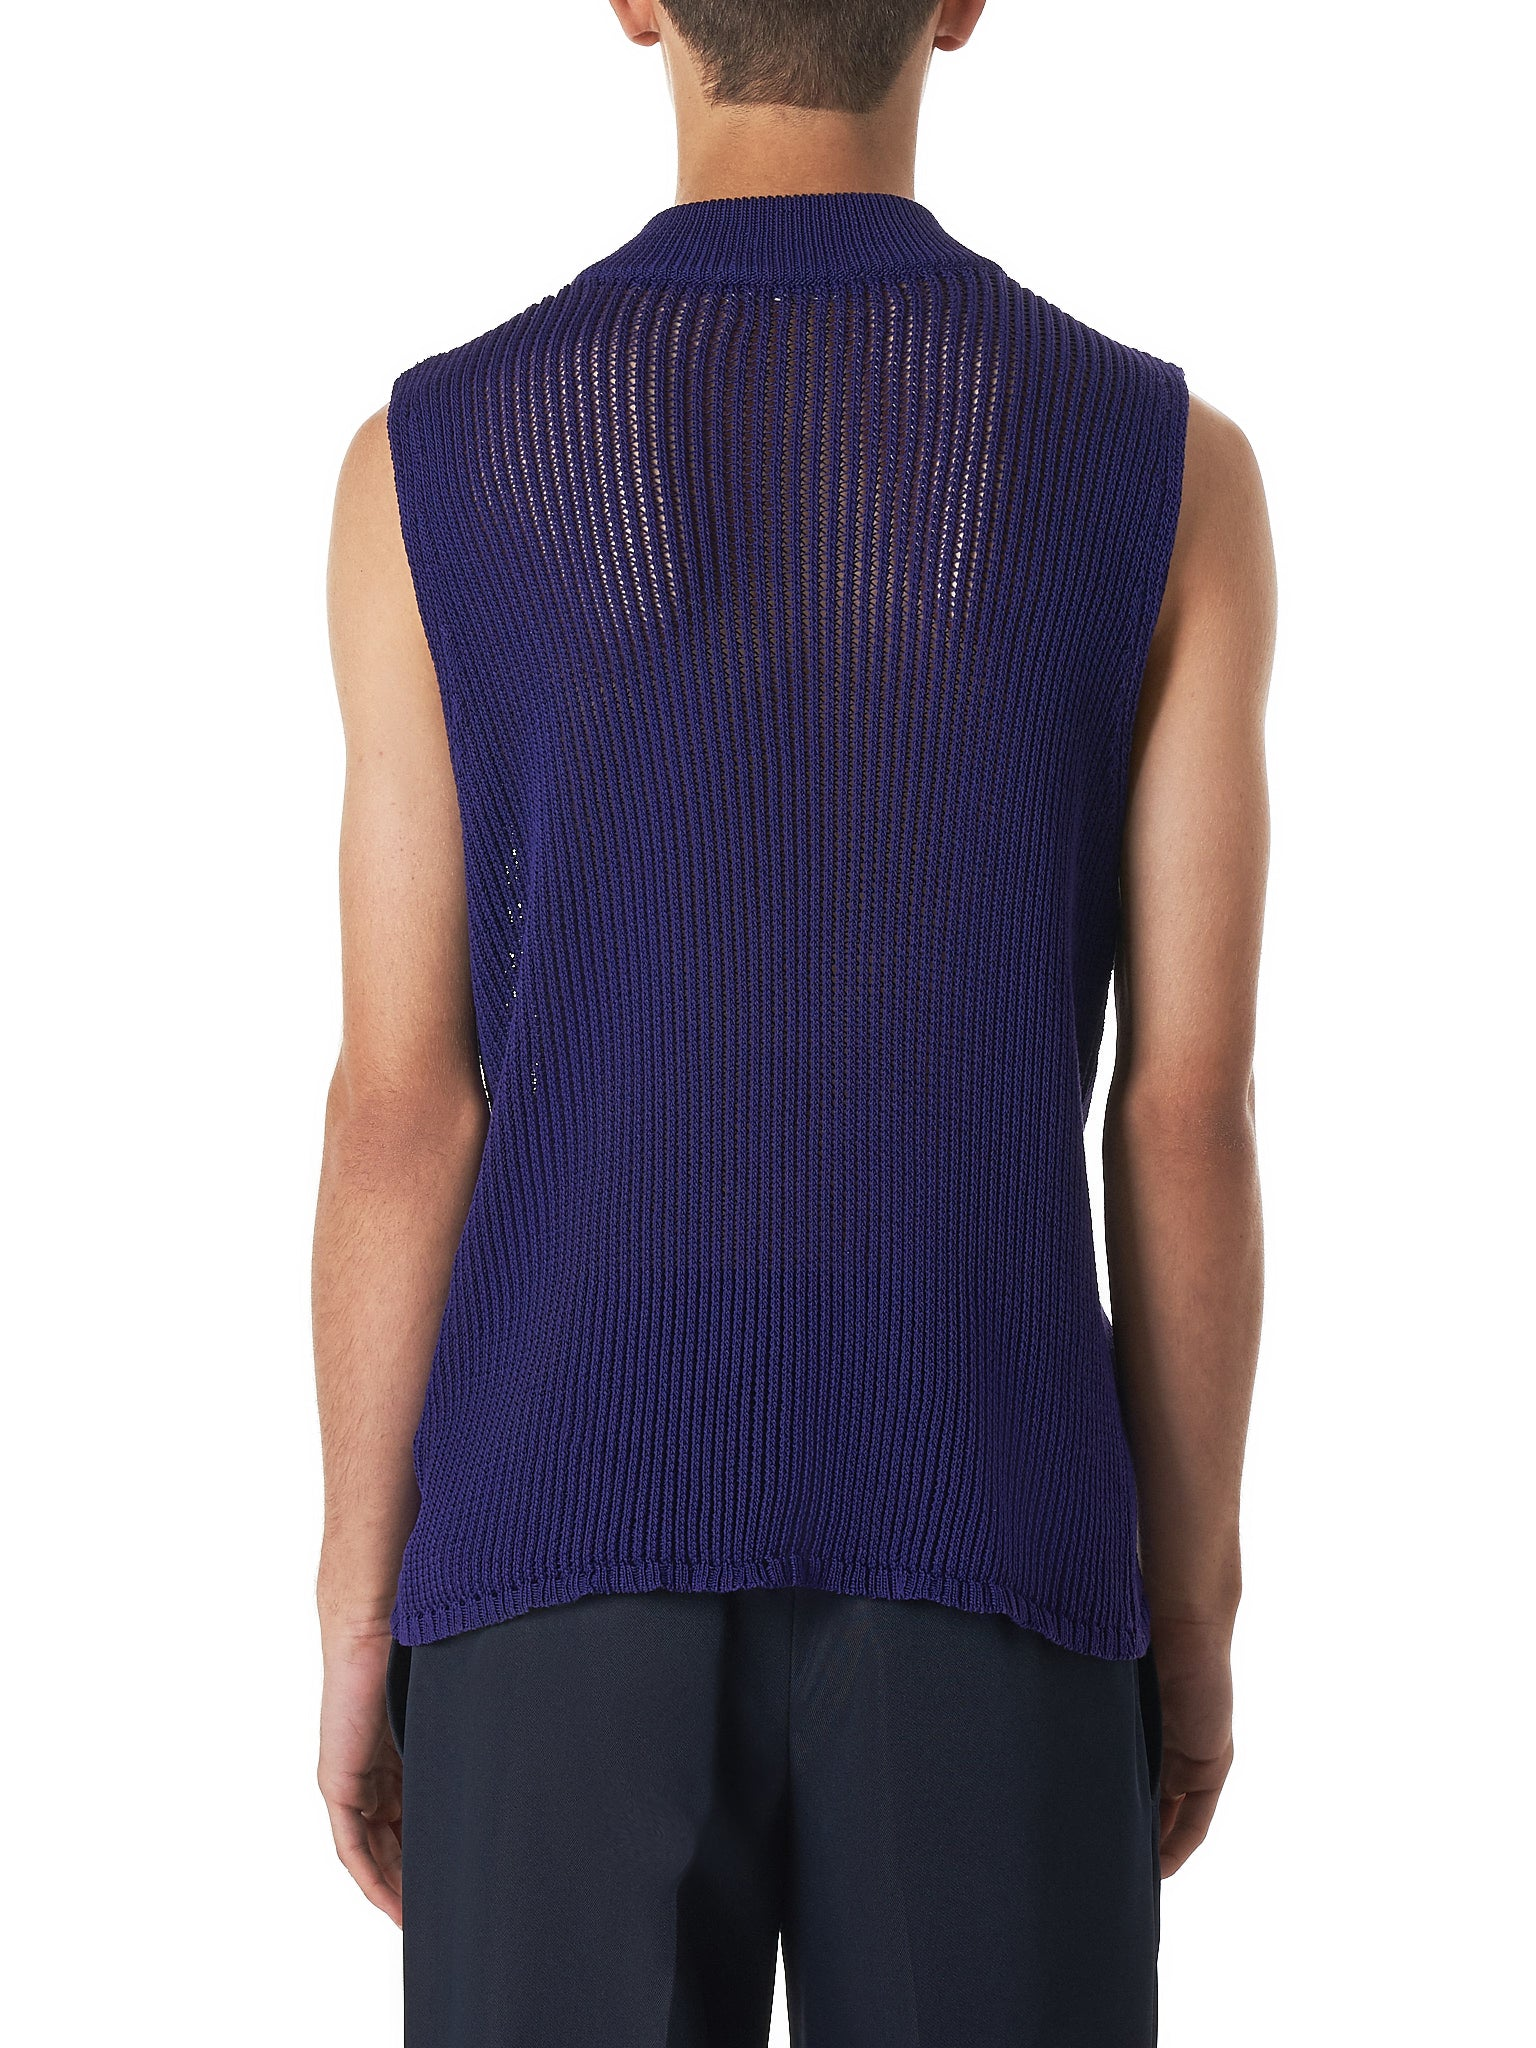 Namacheko Purple Knit Vest - Hlorenzo back